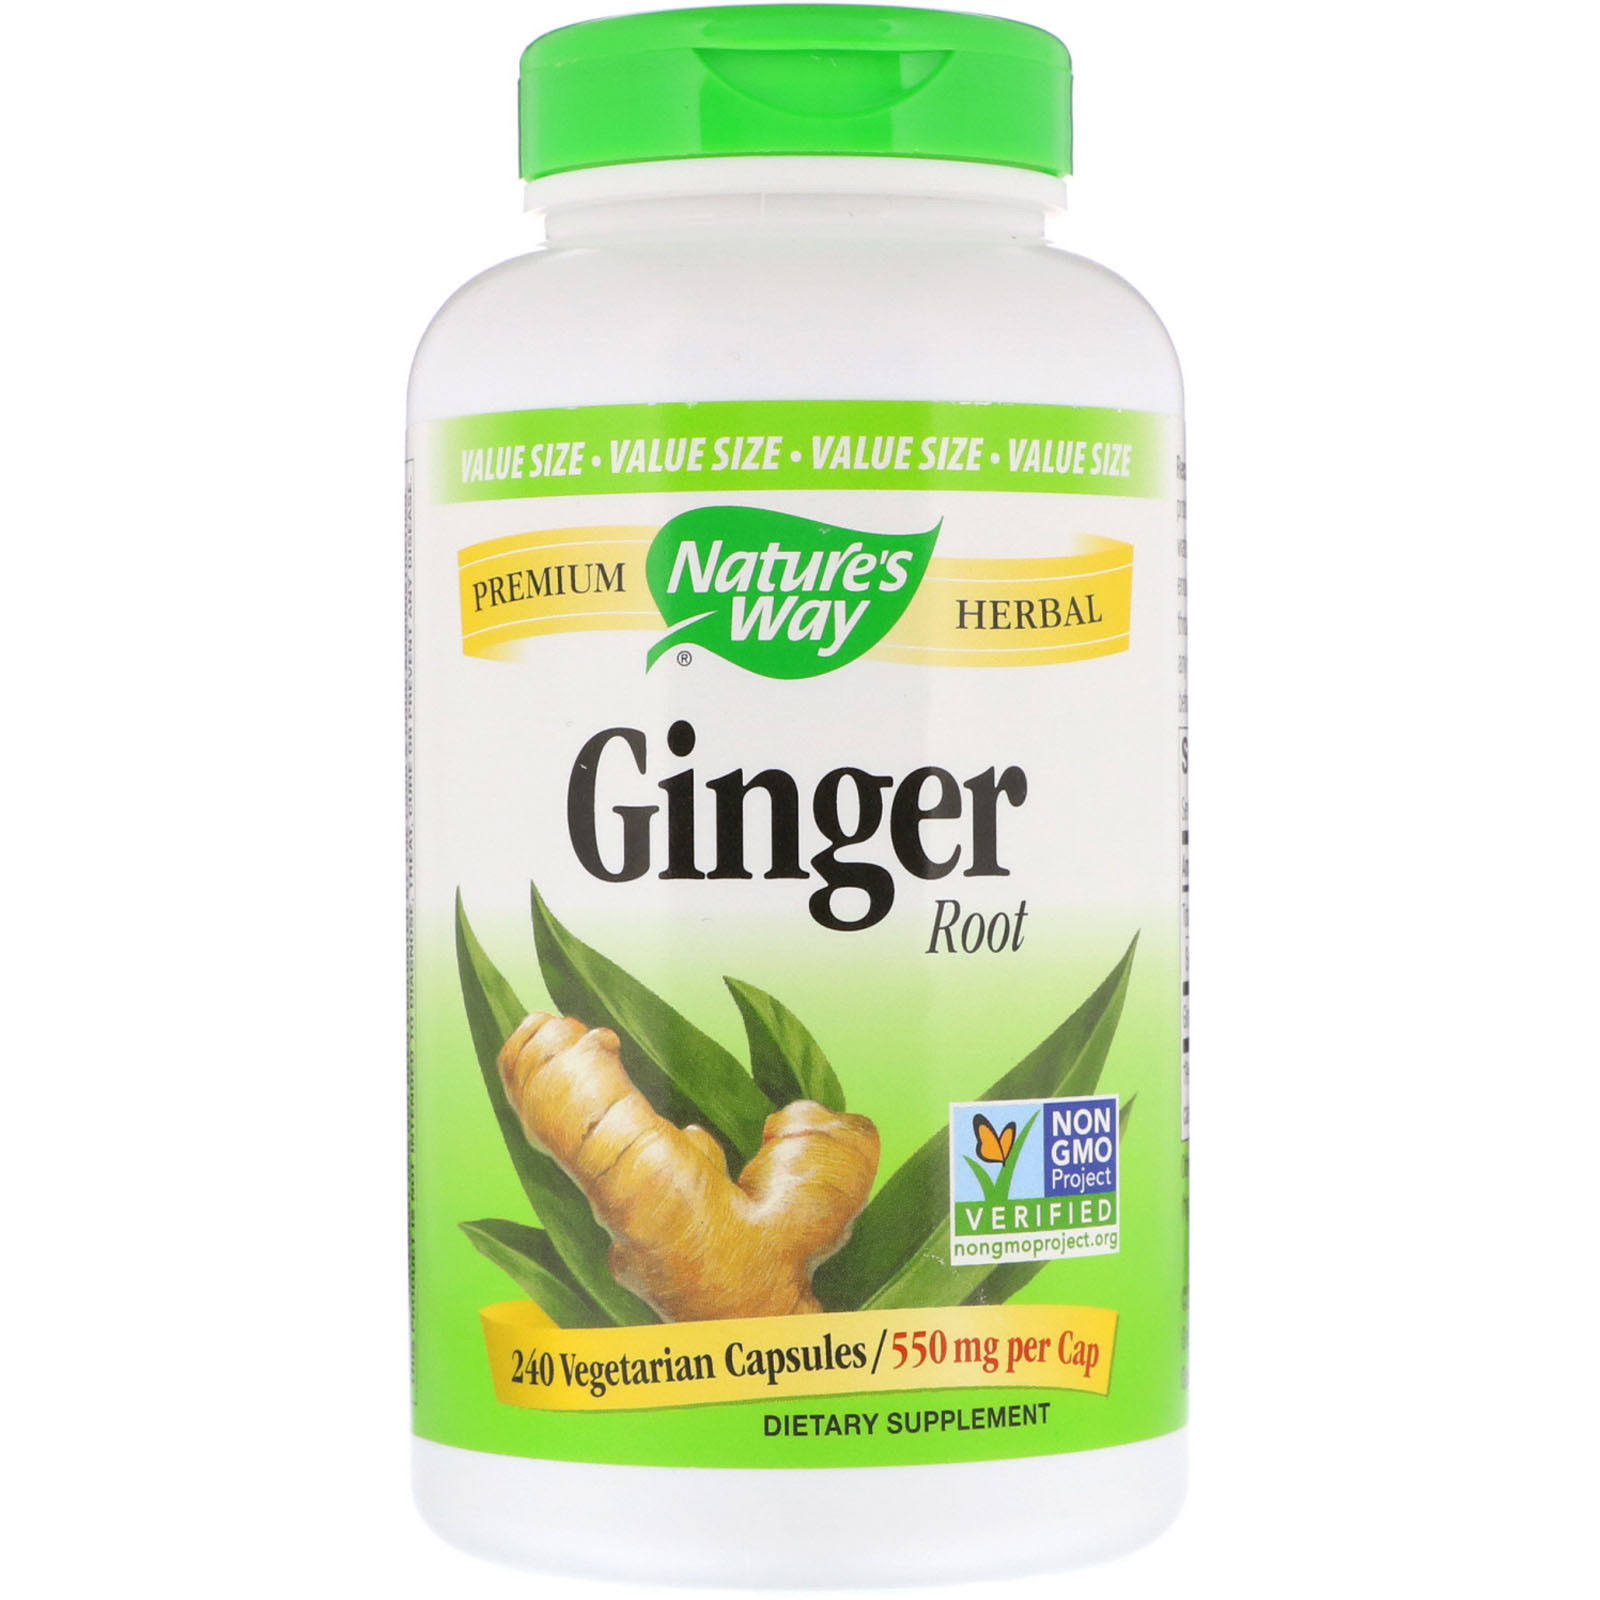 Nature's Way Ginger Root - 550mg, 240ct